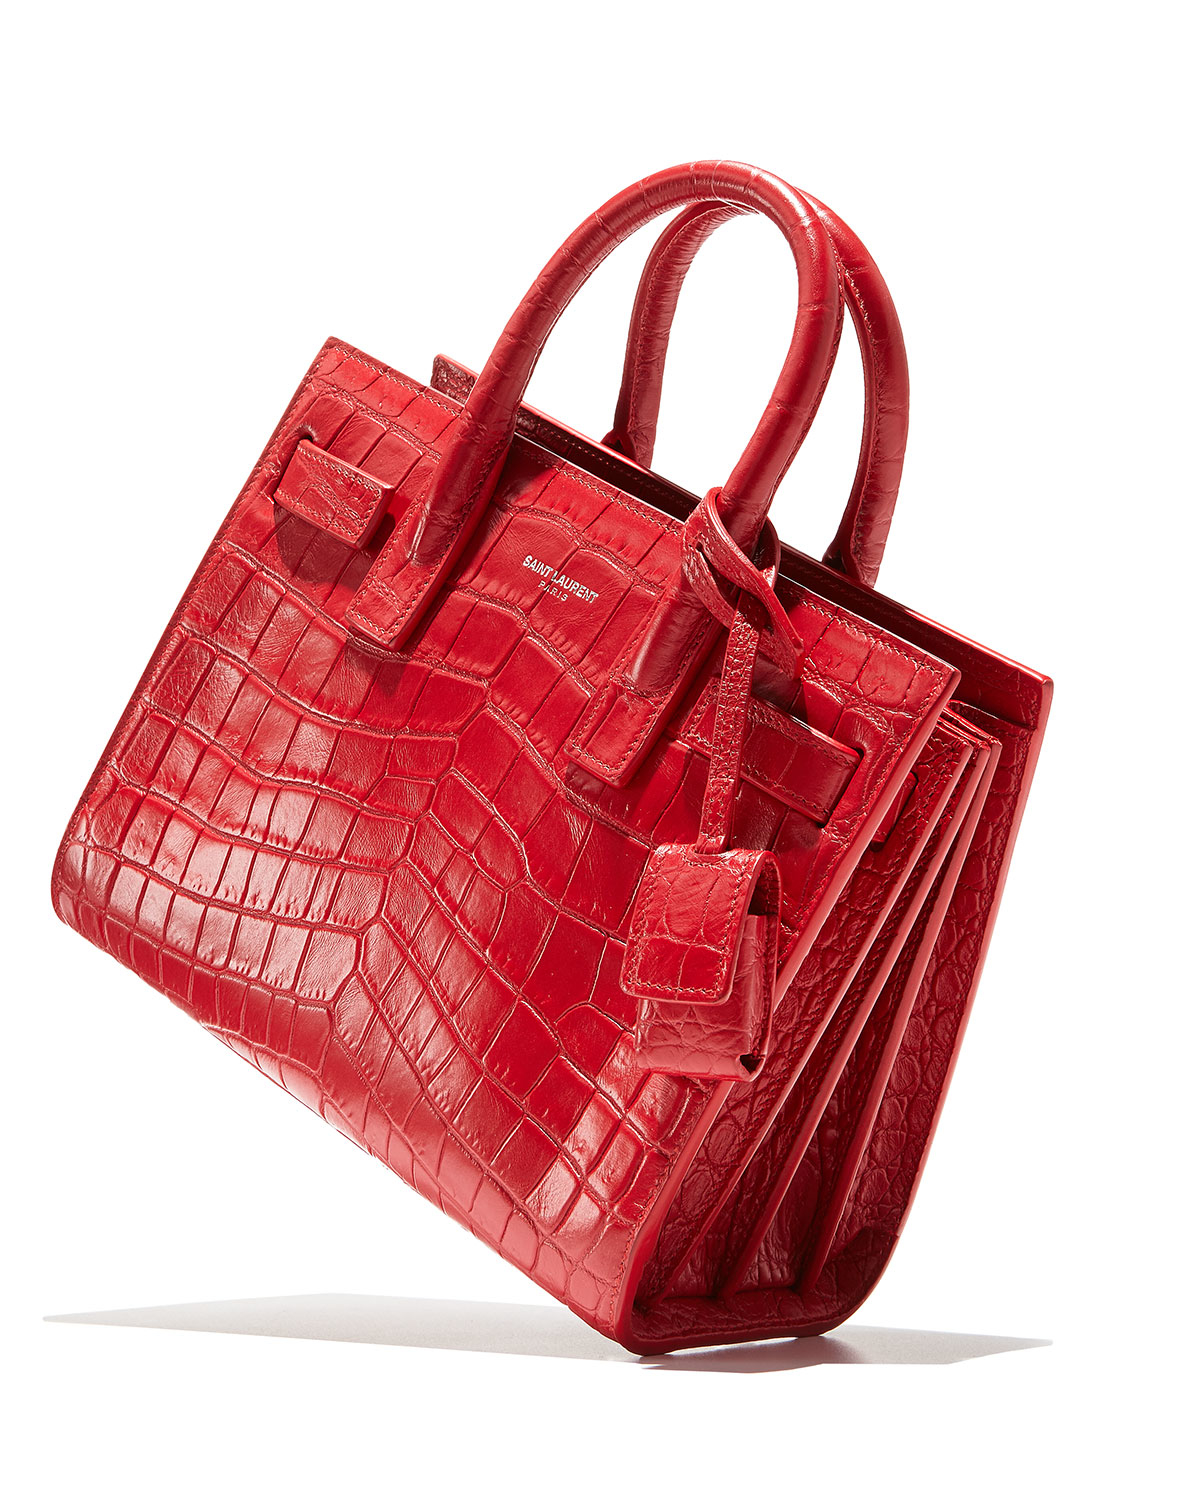 ysl bags uk - classic small sac de jour bag in red crocodile embossed leather